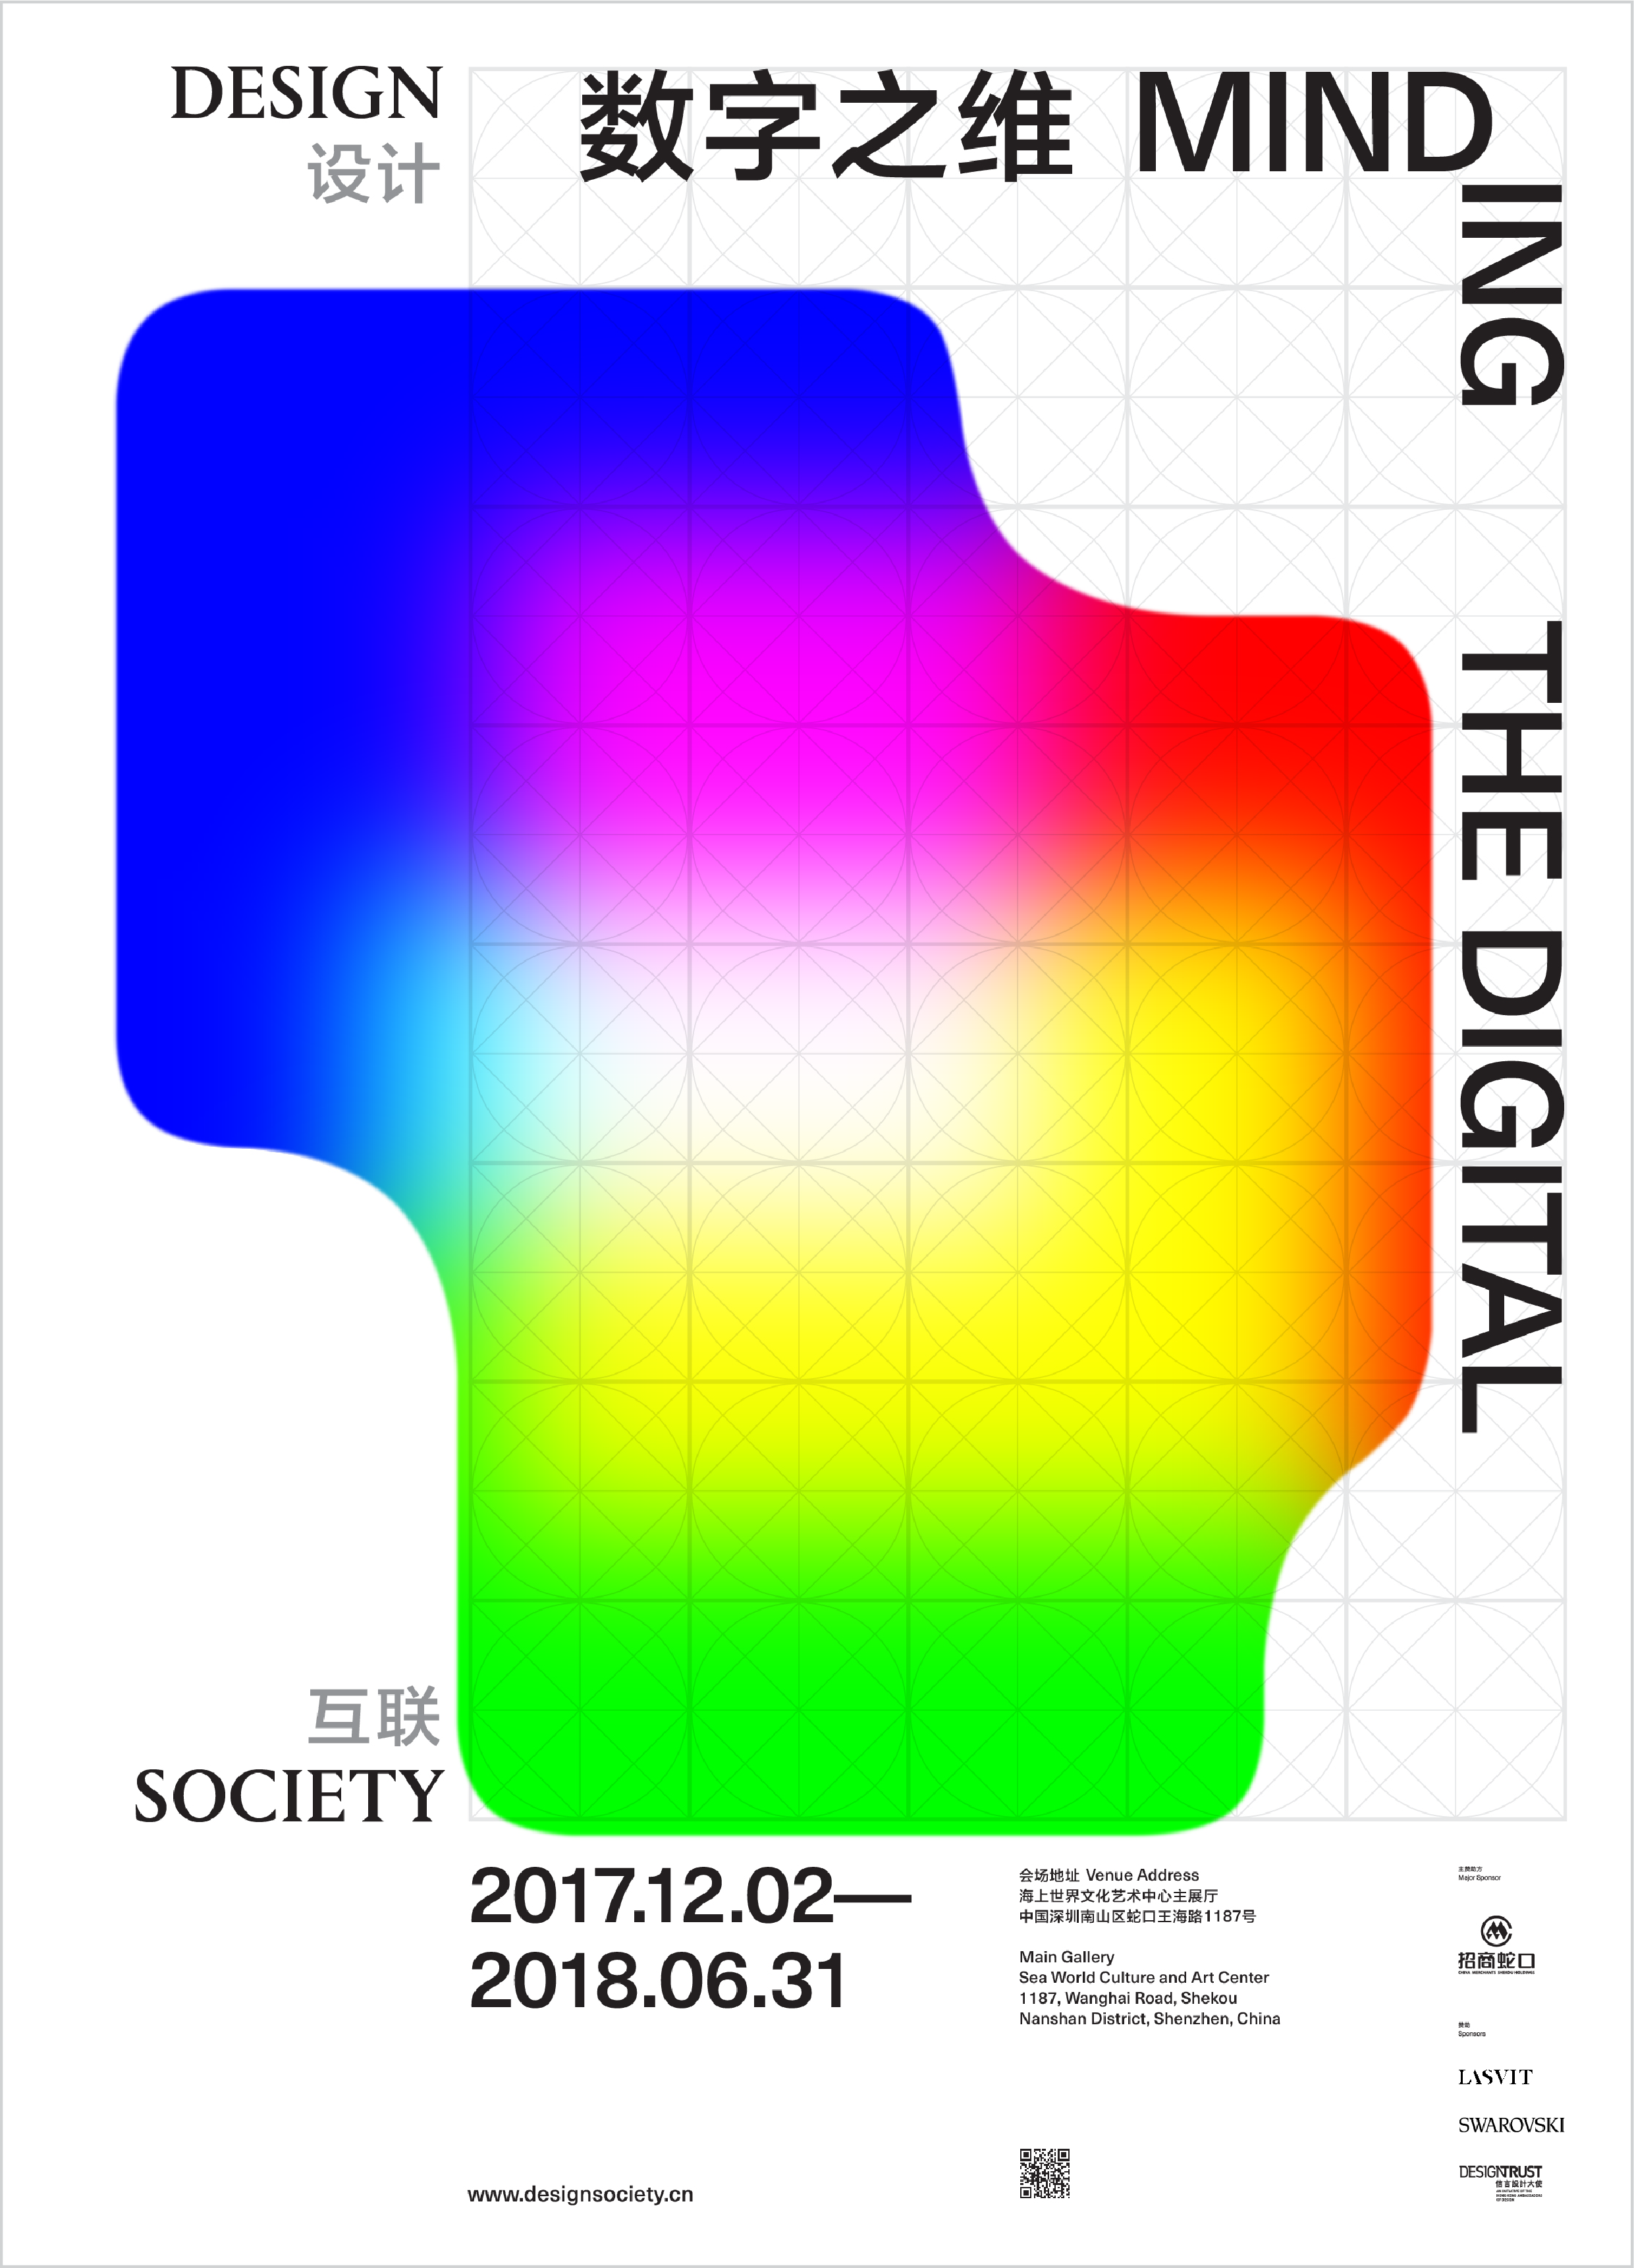 Minding the Digital_Poster__RGB_DEF-01._with border-01